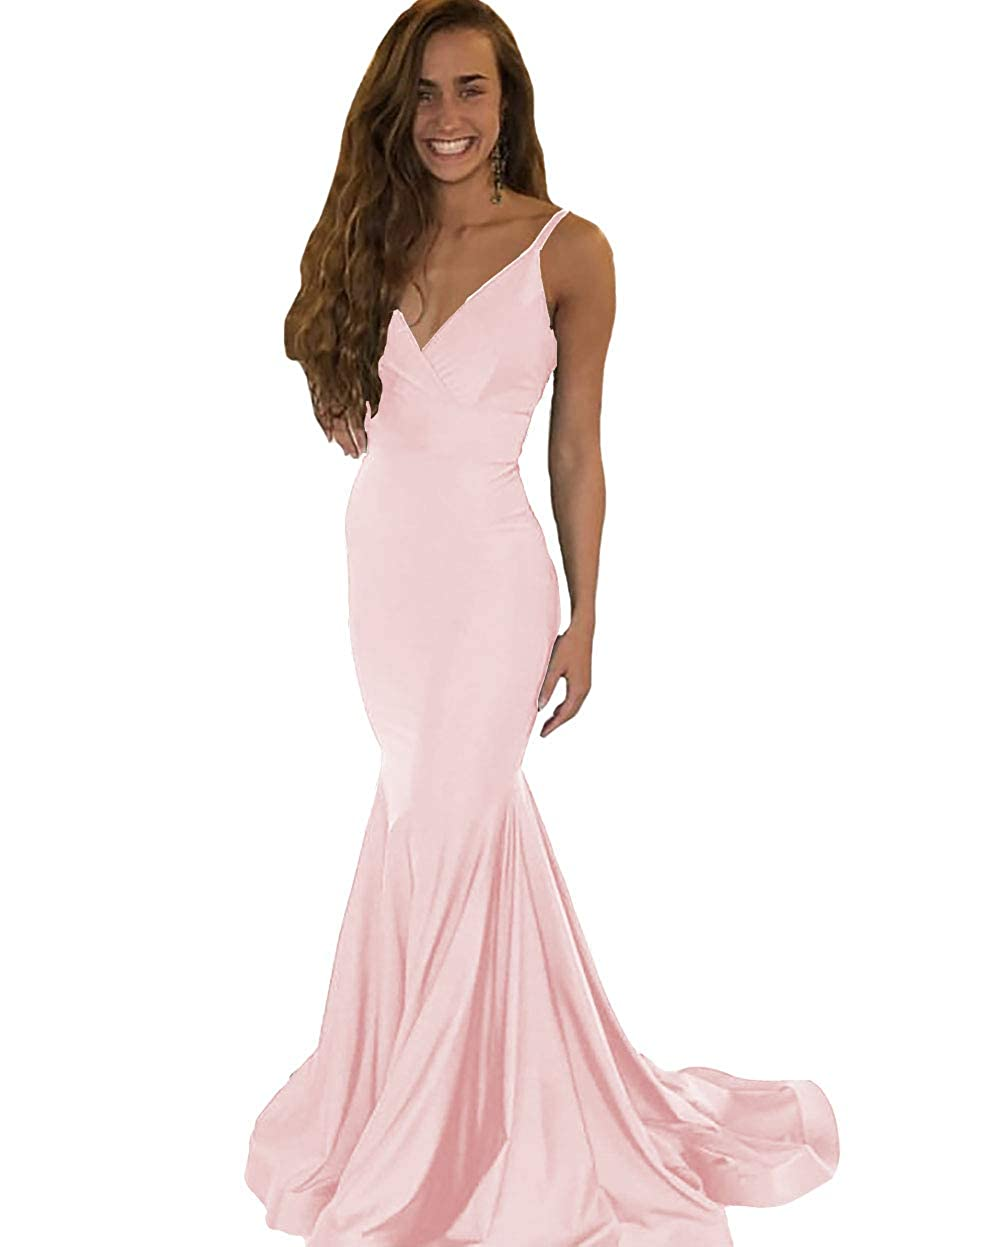 Baby Pink IVYPRECIOUS Women's V Neck Mermaid Long Backless Prom Dresses Evening Gowns